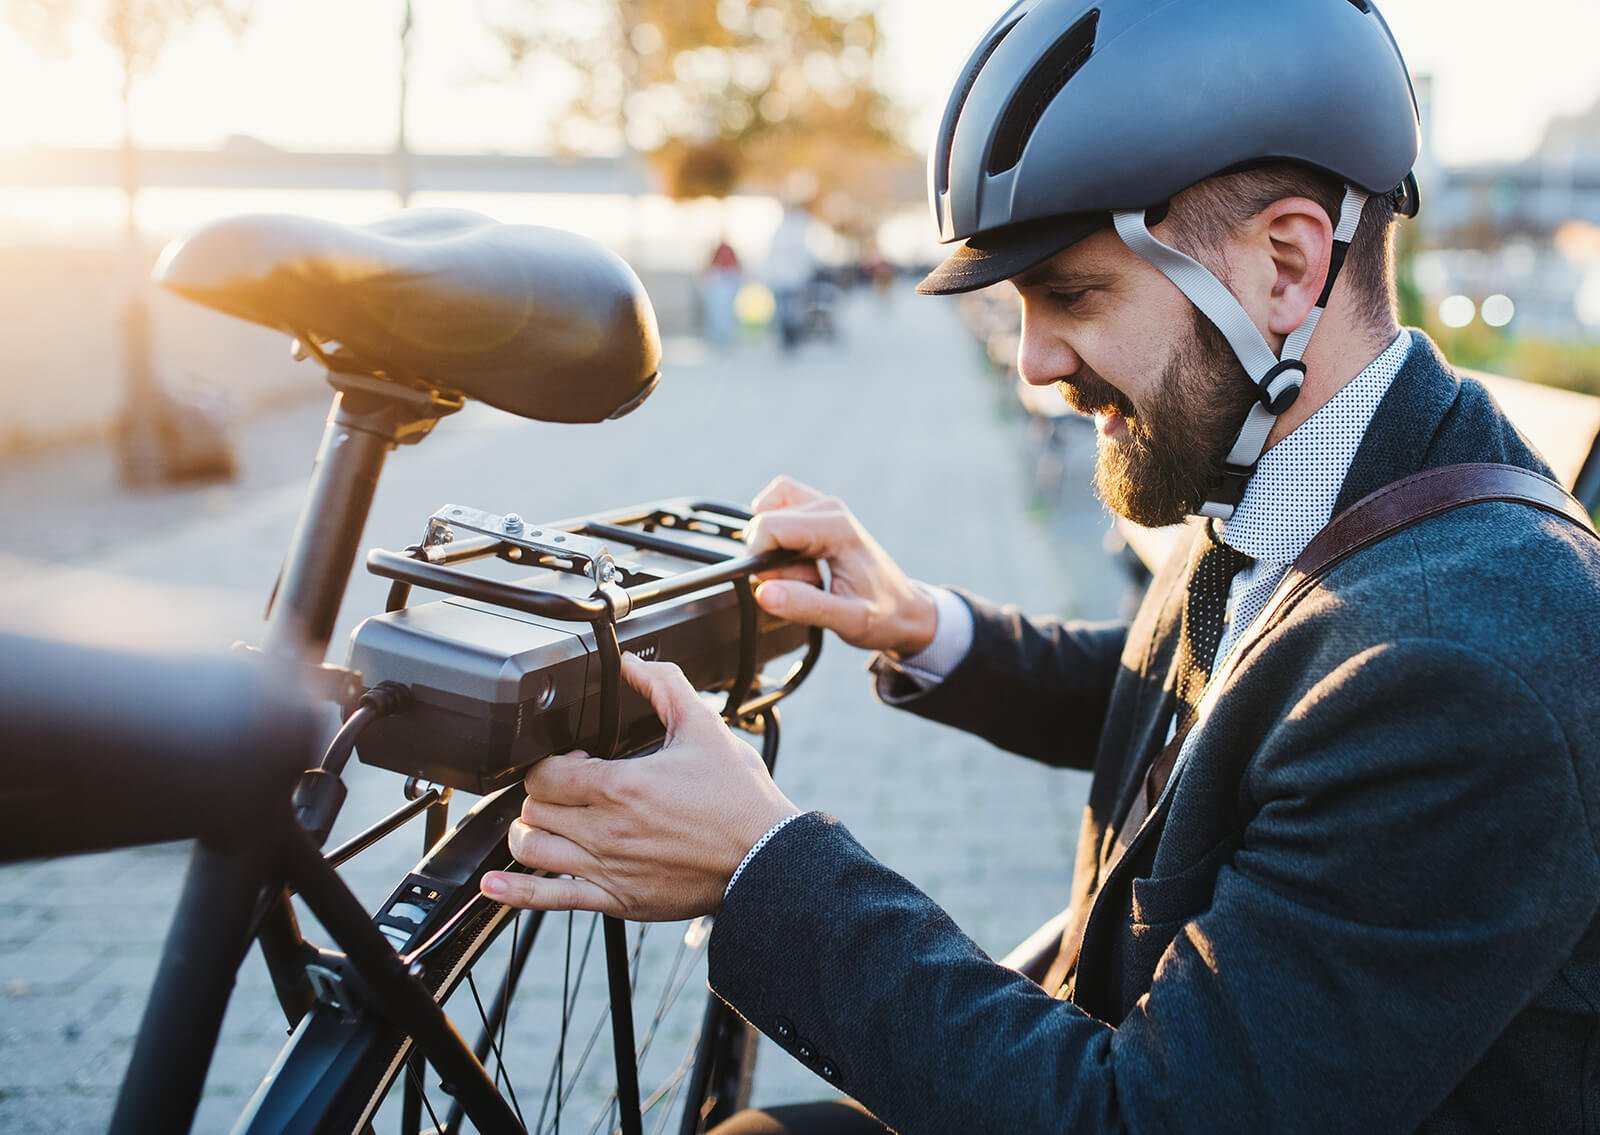 Increase Your Electric Bike's Range With These Tips